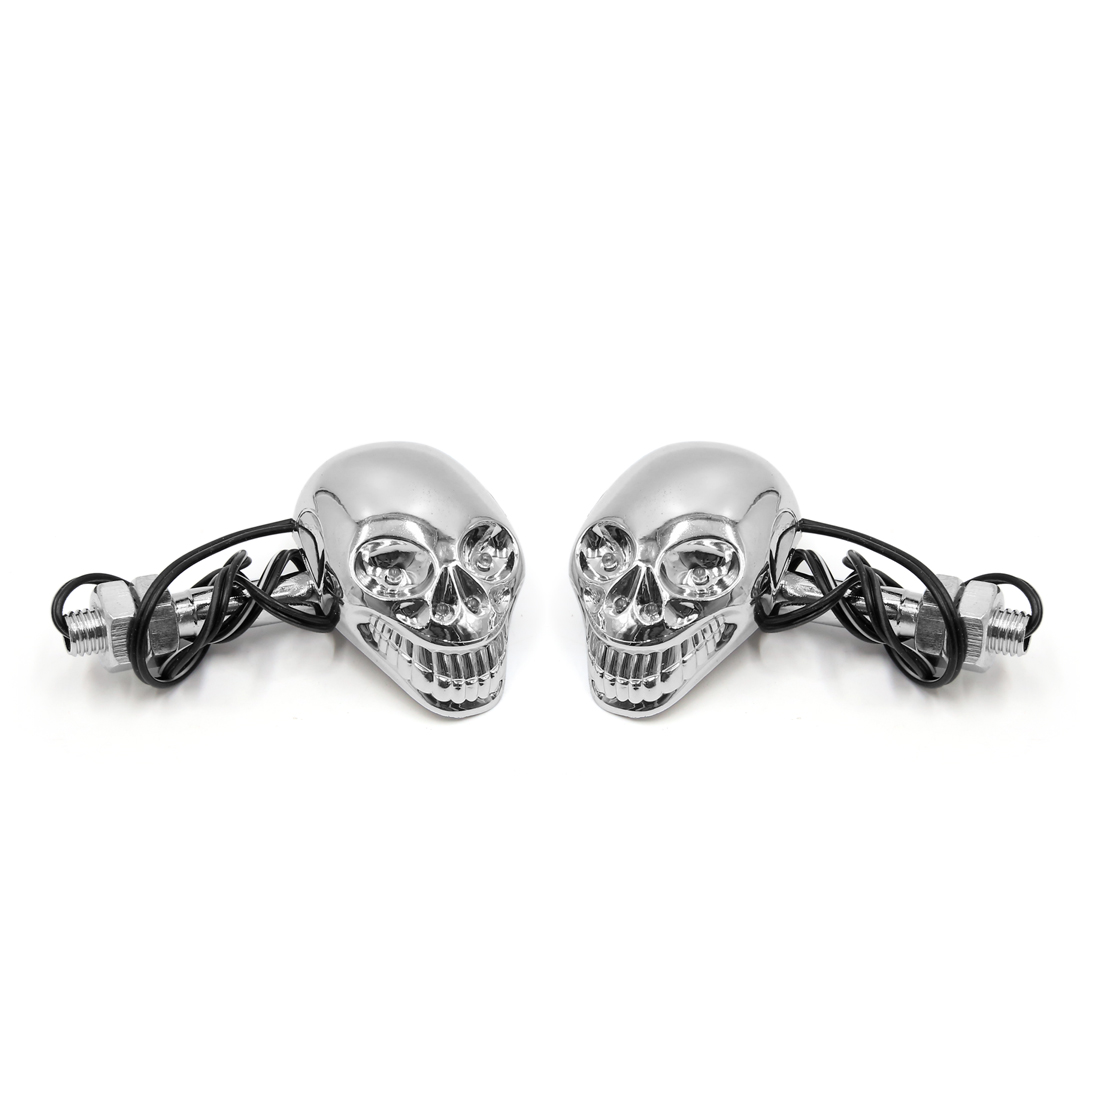 2Pcs Silver Tone Shell Skull Shape Motorcycle Yellow Decorative Light Side Lamp